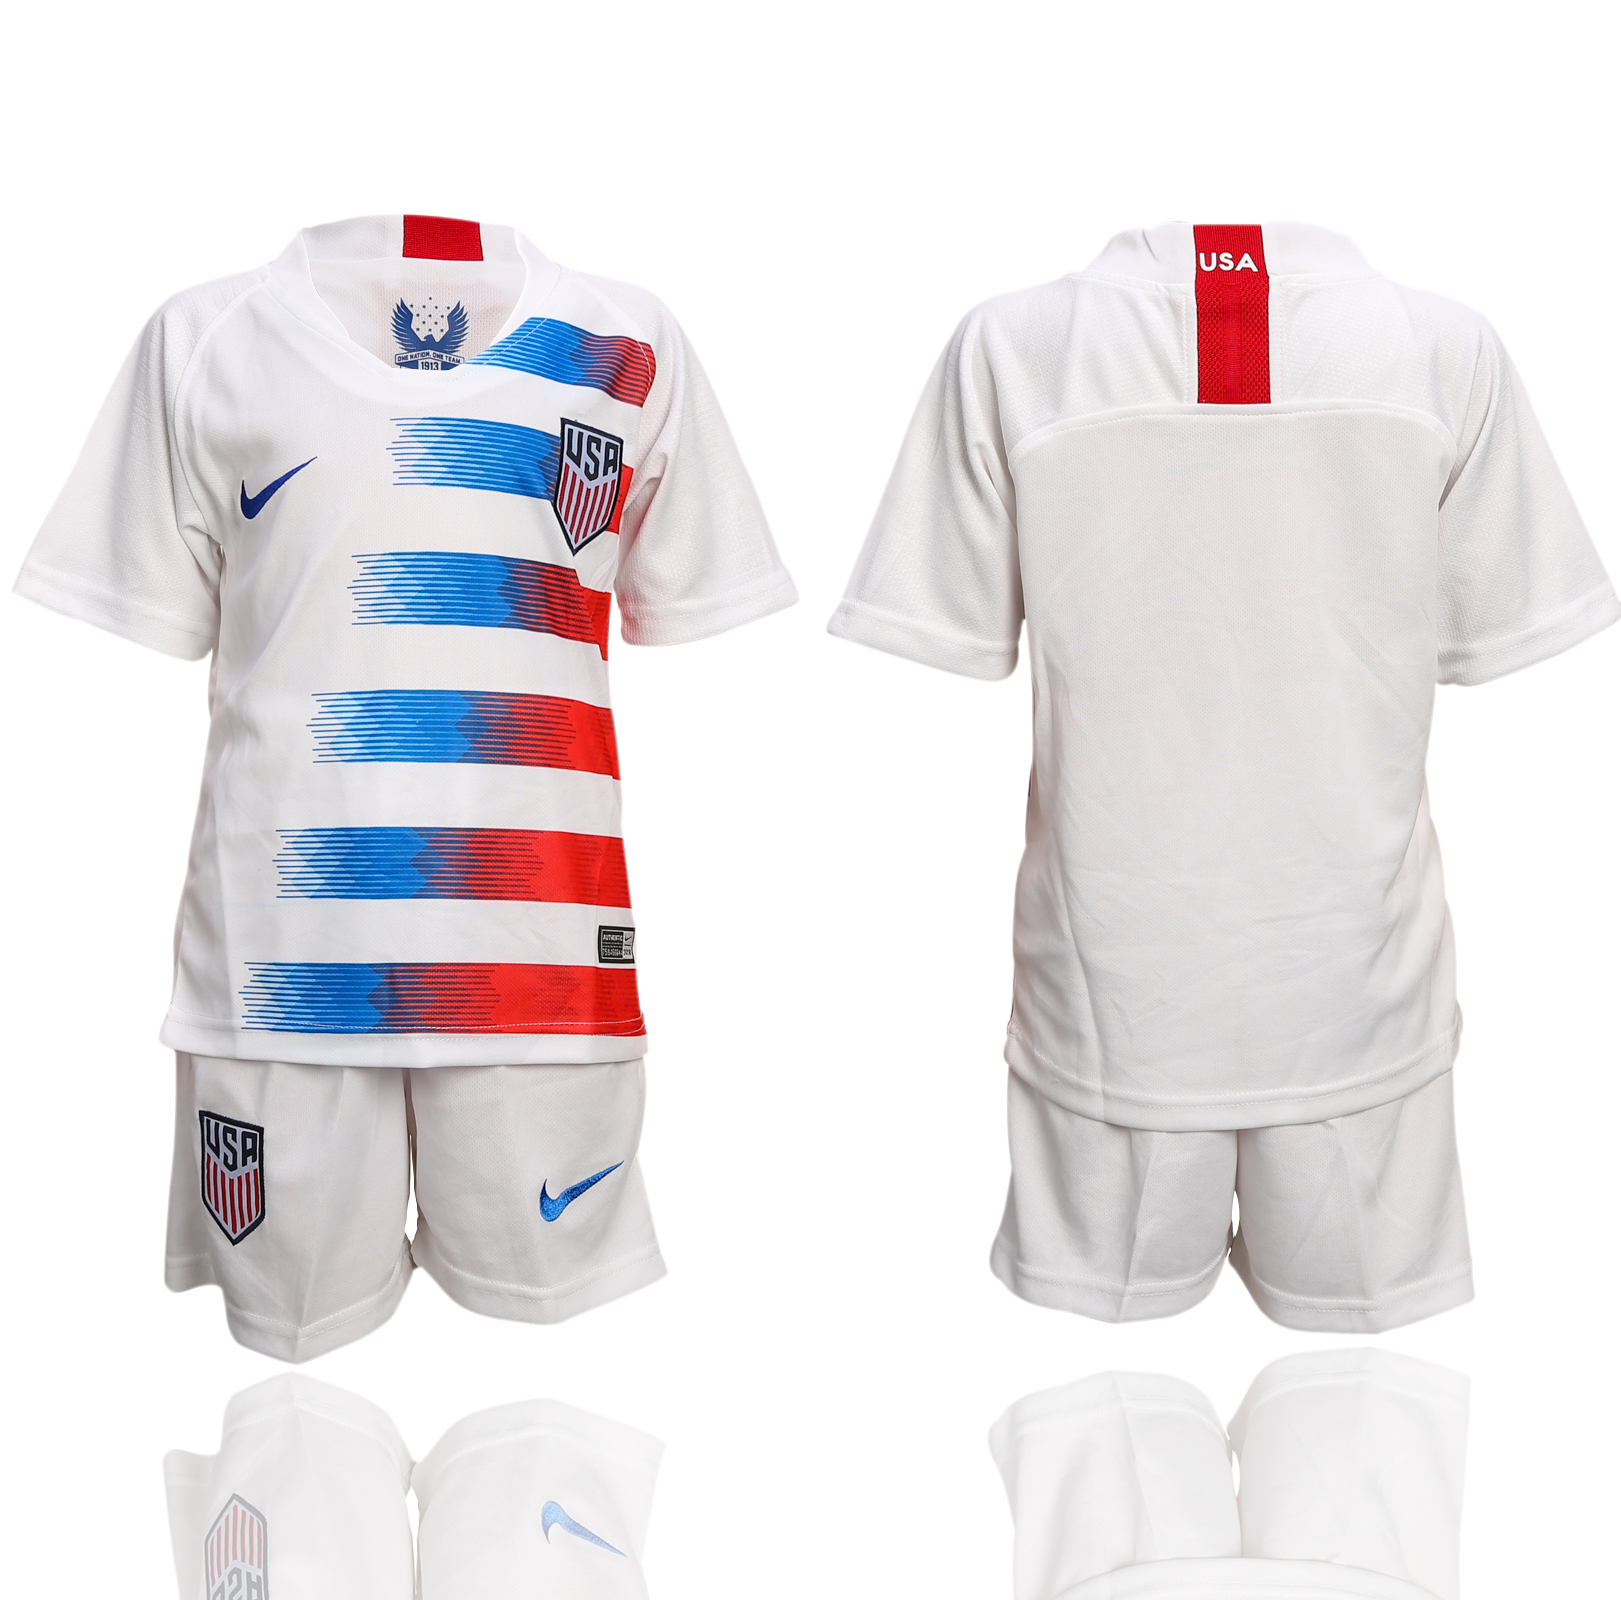 2018-2019 national America home youth soccer jersey